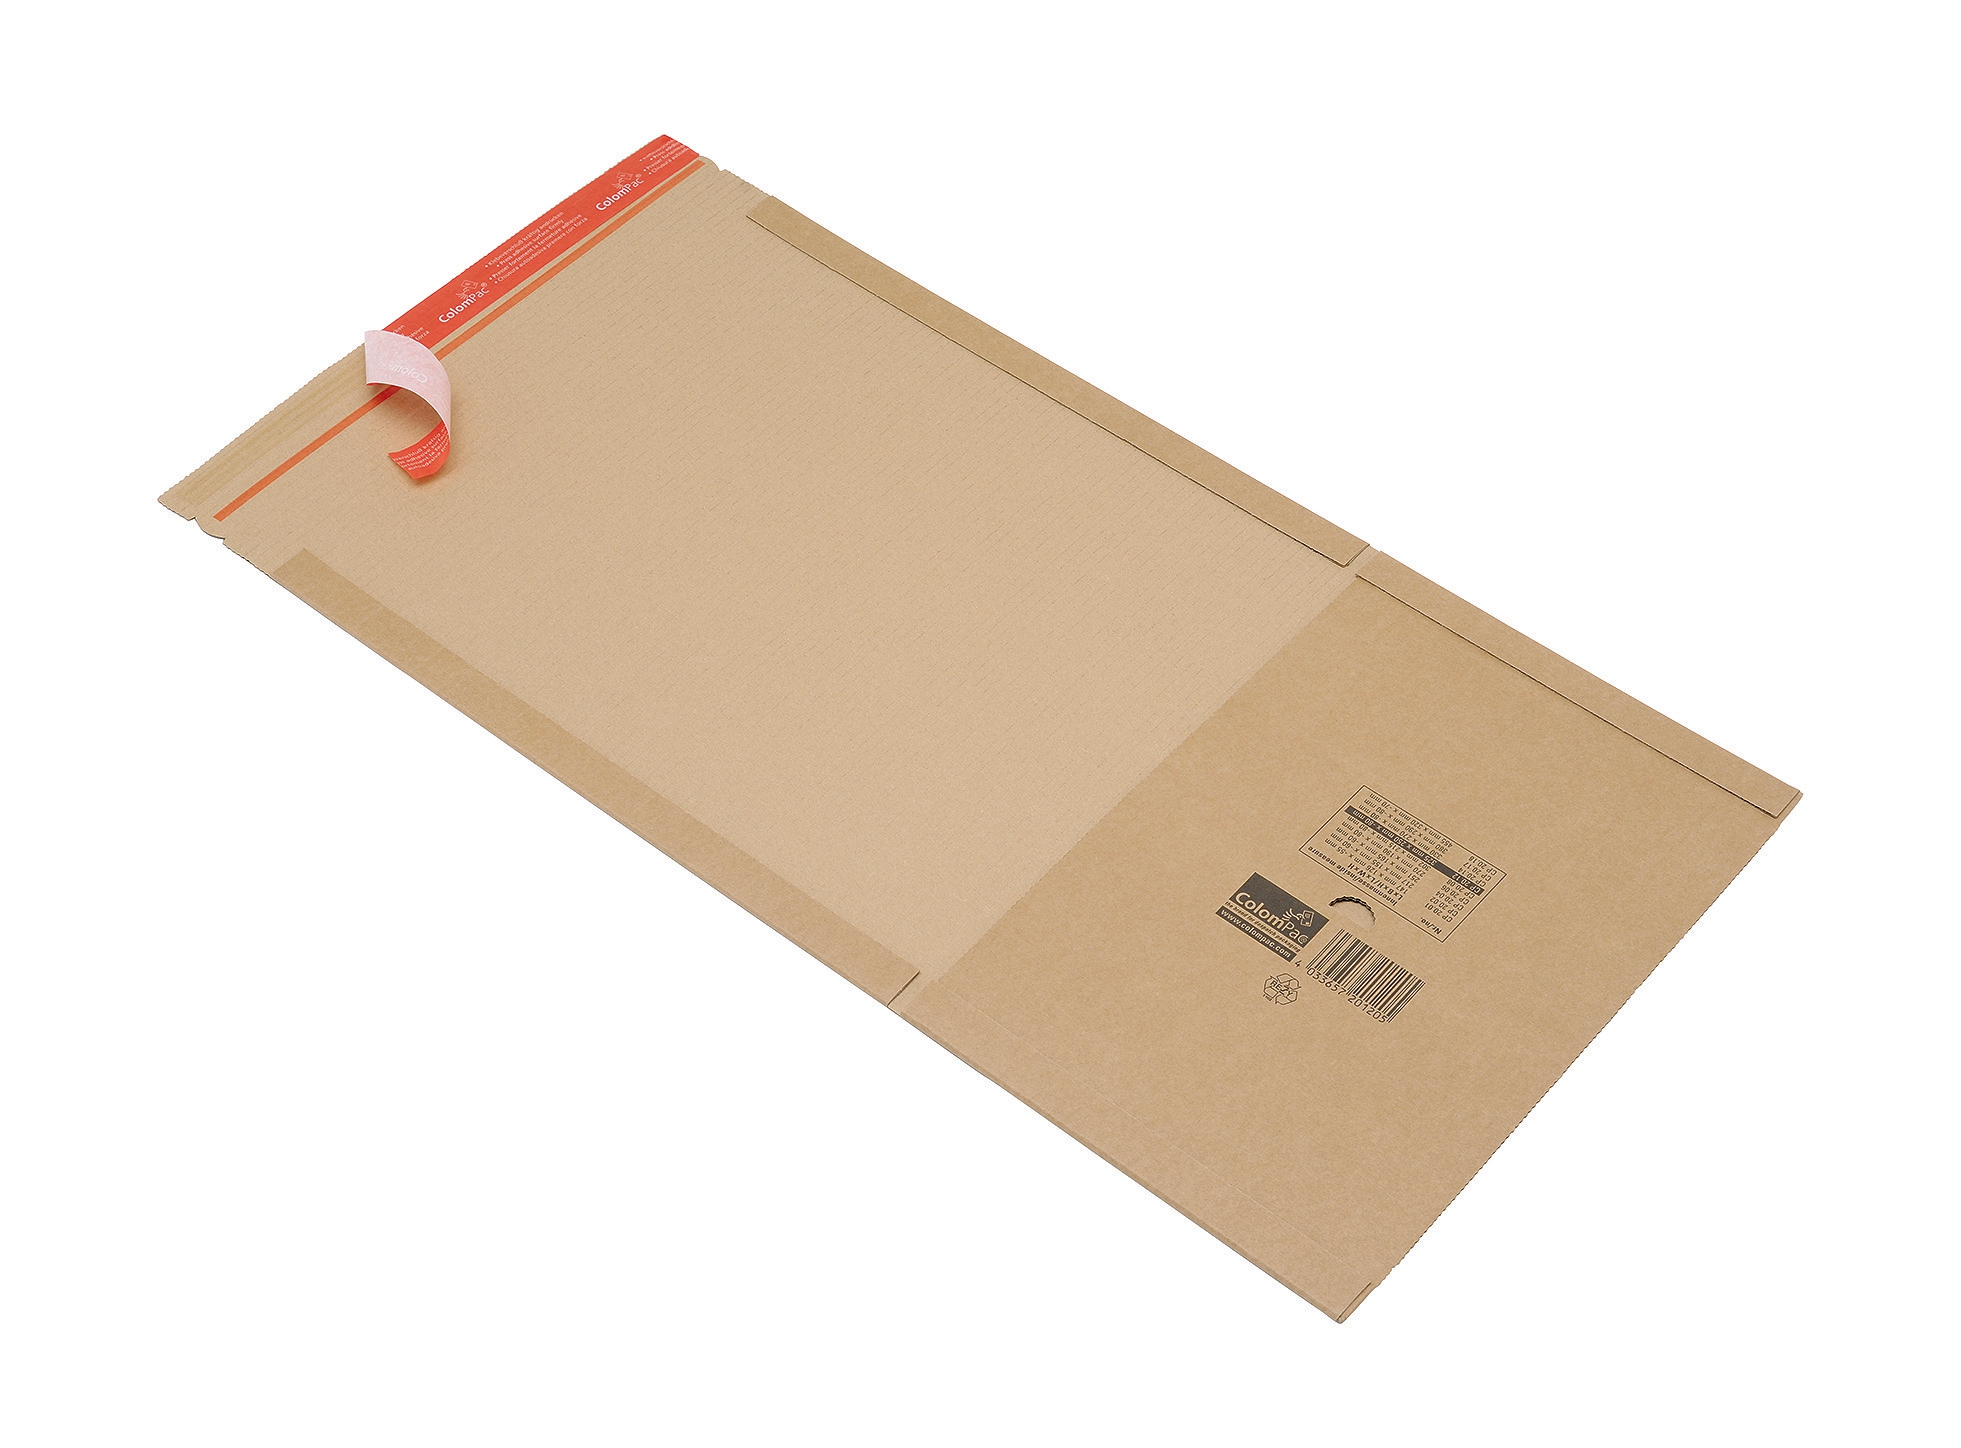 Universal Packaging 330x270x80 Pk25